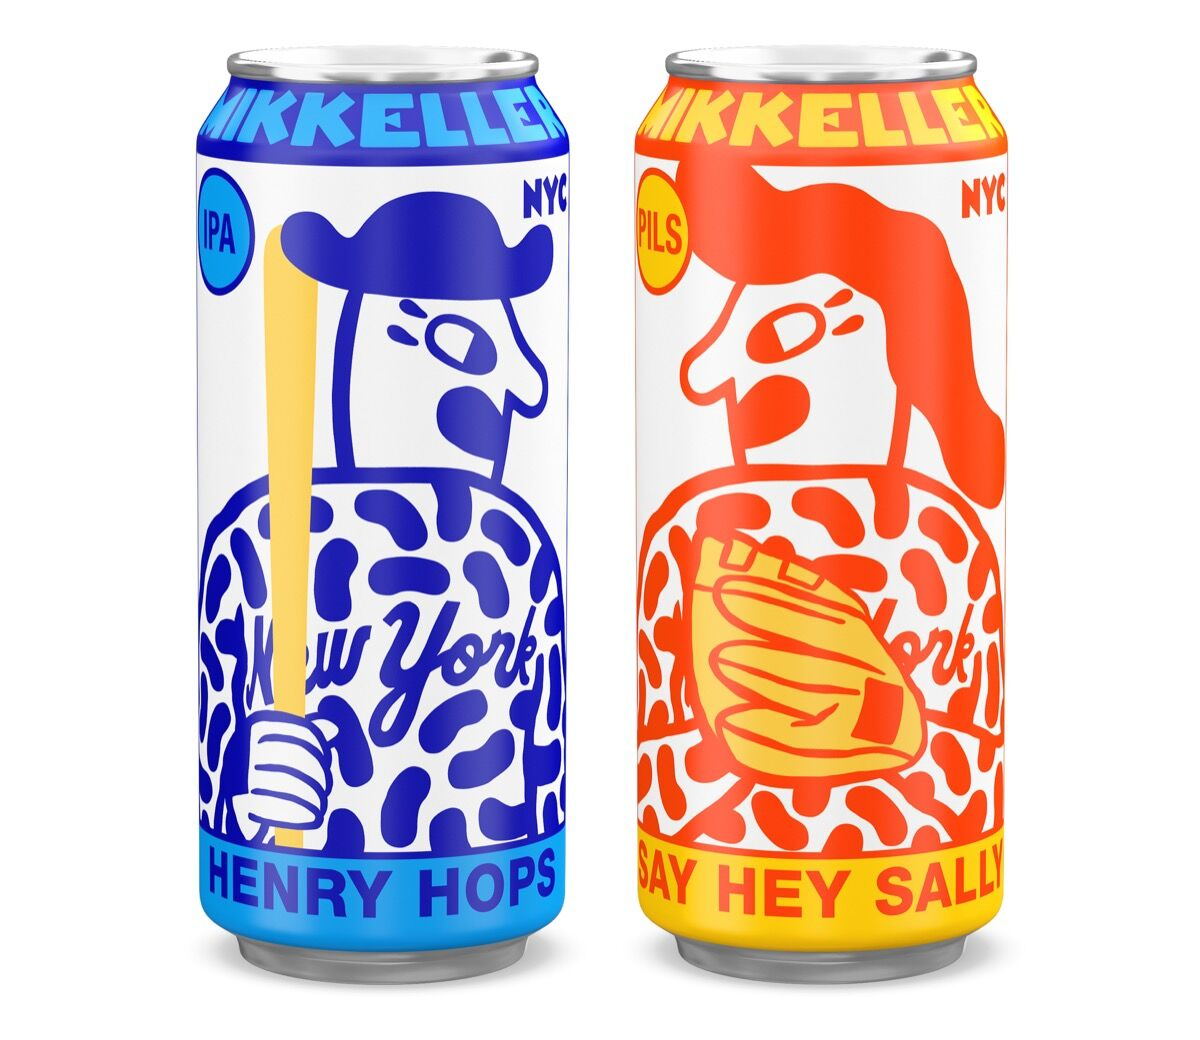 Henry Hops & Say Hey Sally – Mikkeller NYC. Courtesy of Mikkeller and Keith Shore.